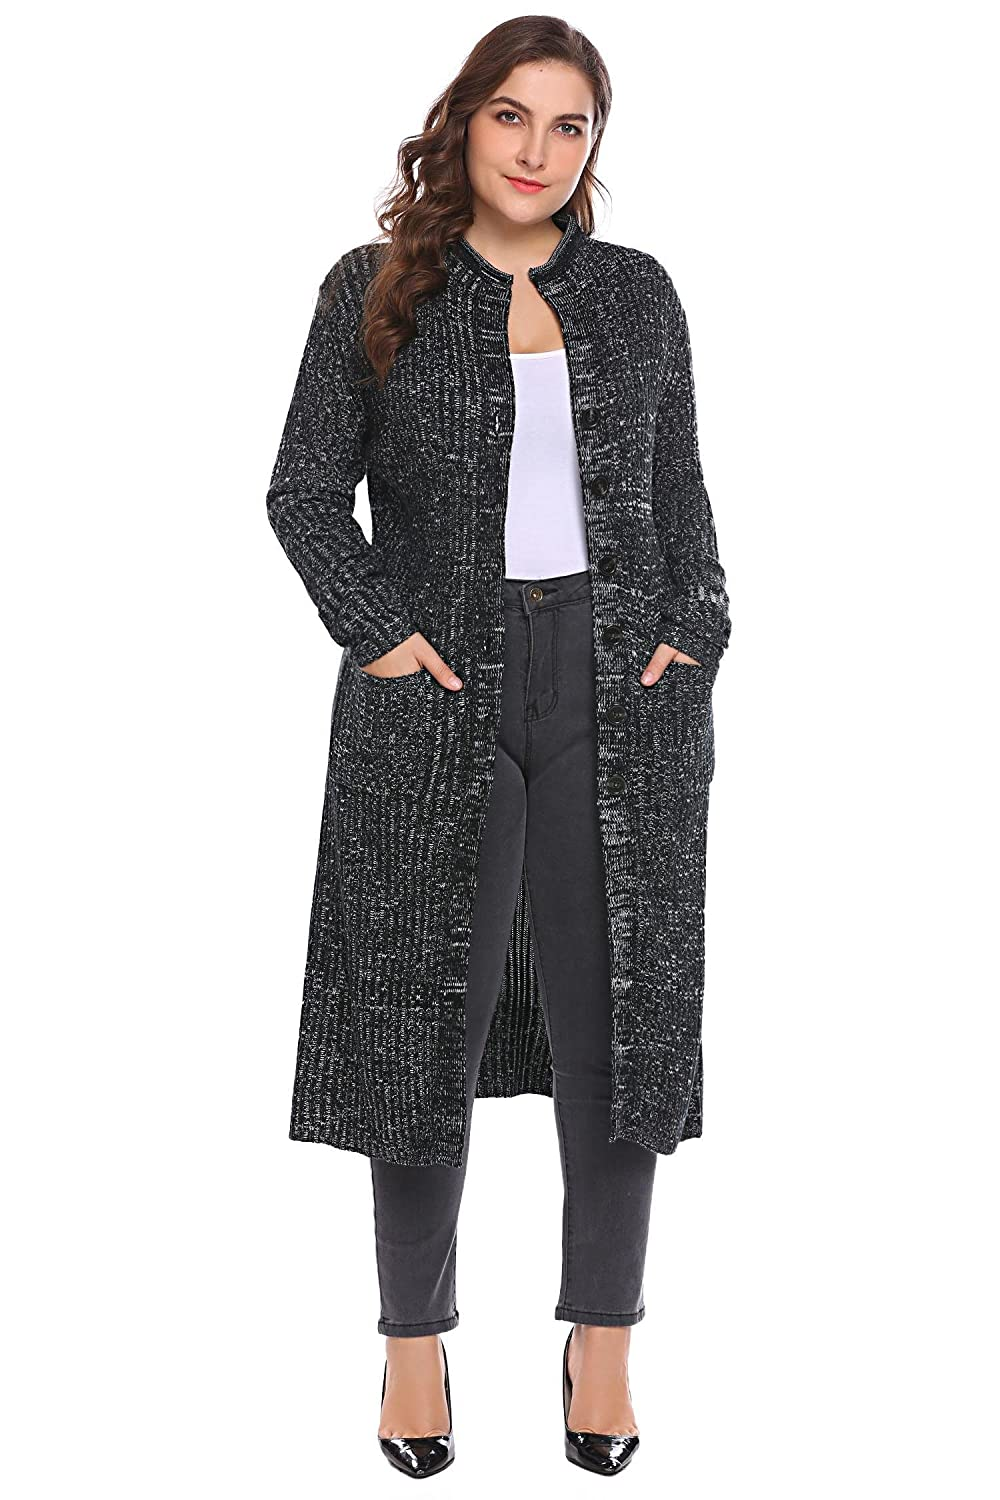 Plus Size Winter Work Outfits You Must Try